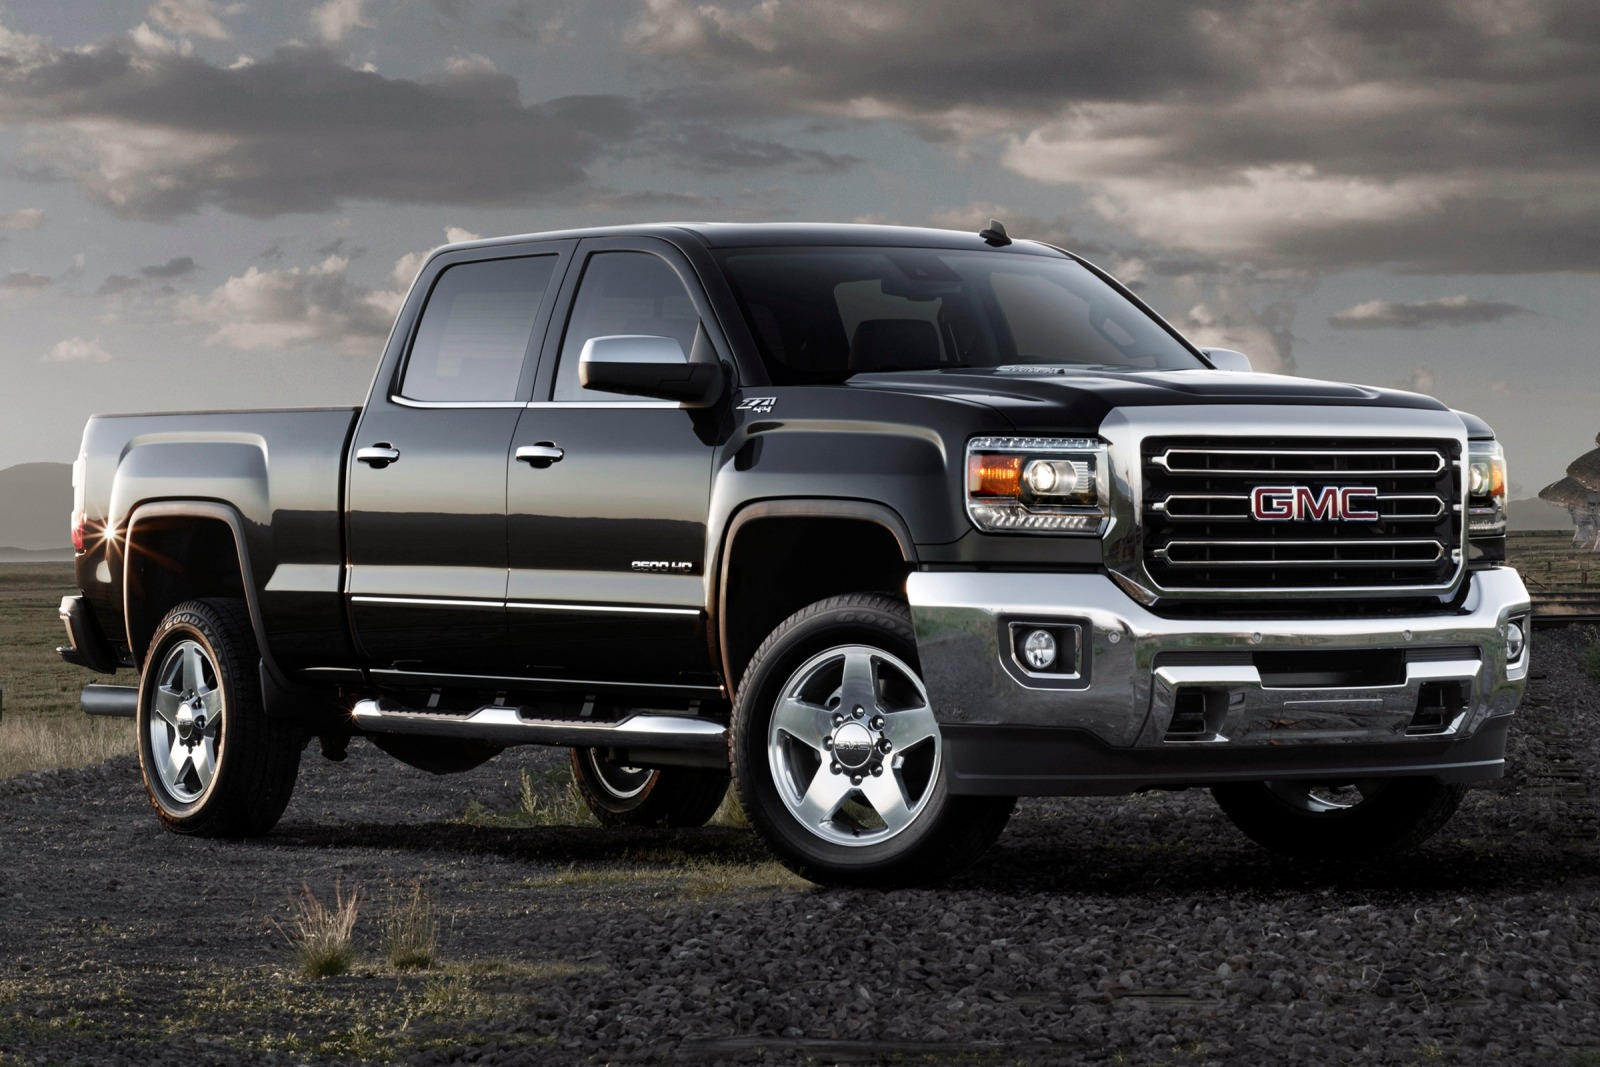 2018 GMC Sierra 2500HD Crew Cab Review, Trims, Specs and ...